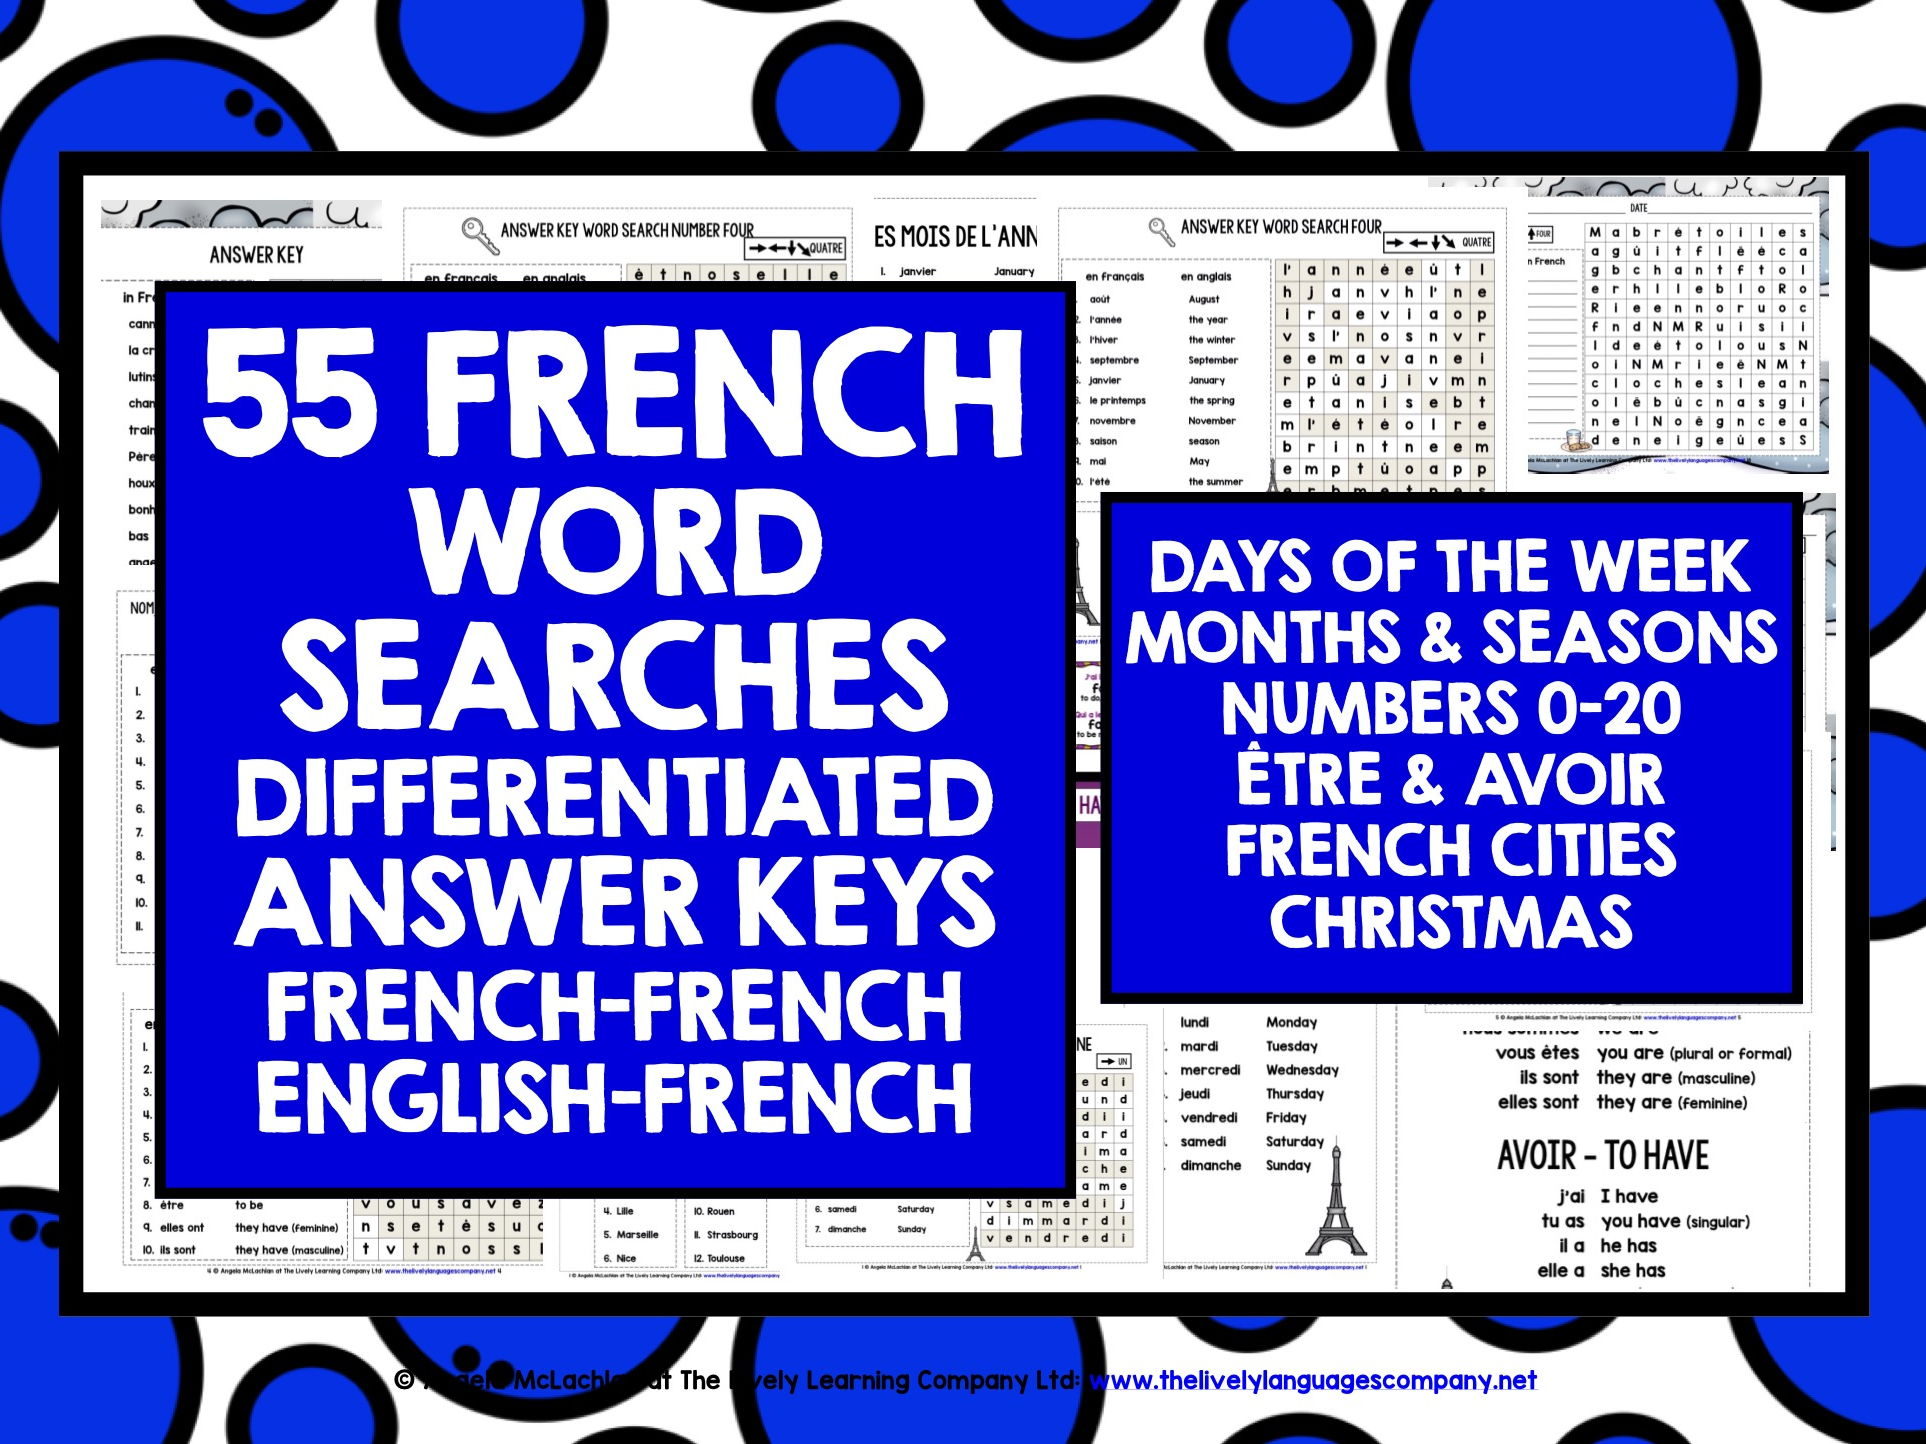 PRIMARY FRENCH WORD SEARCHES 1